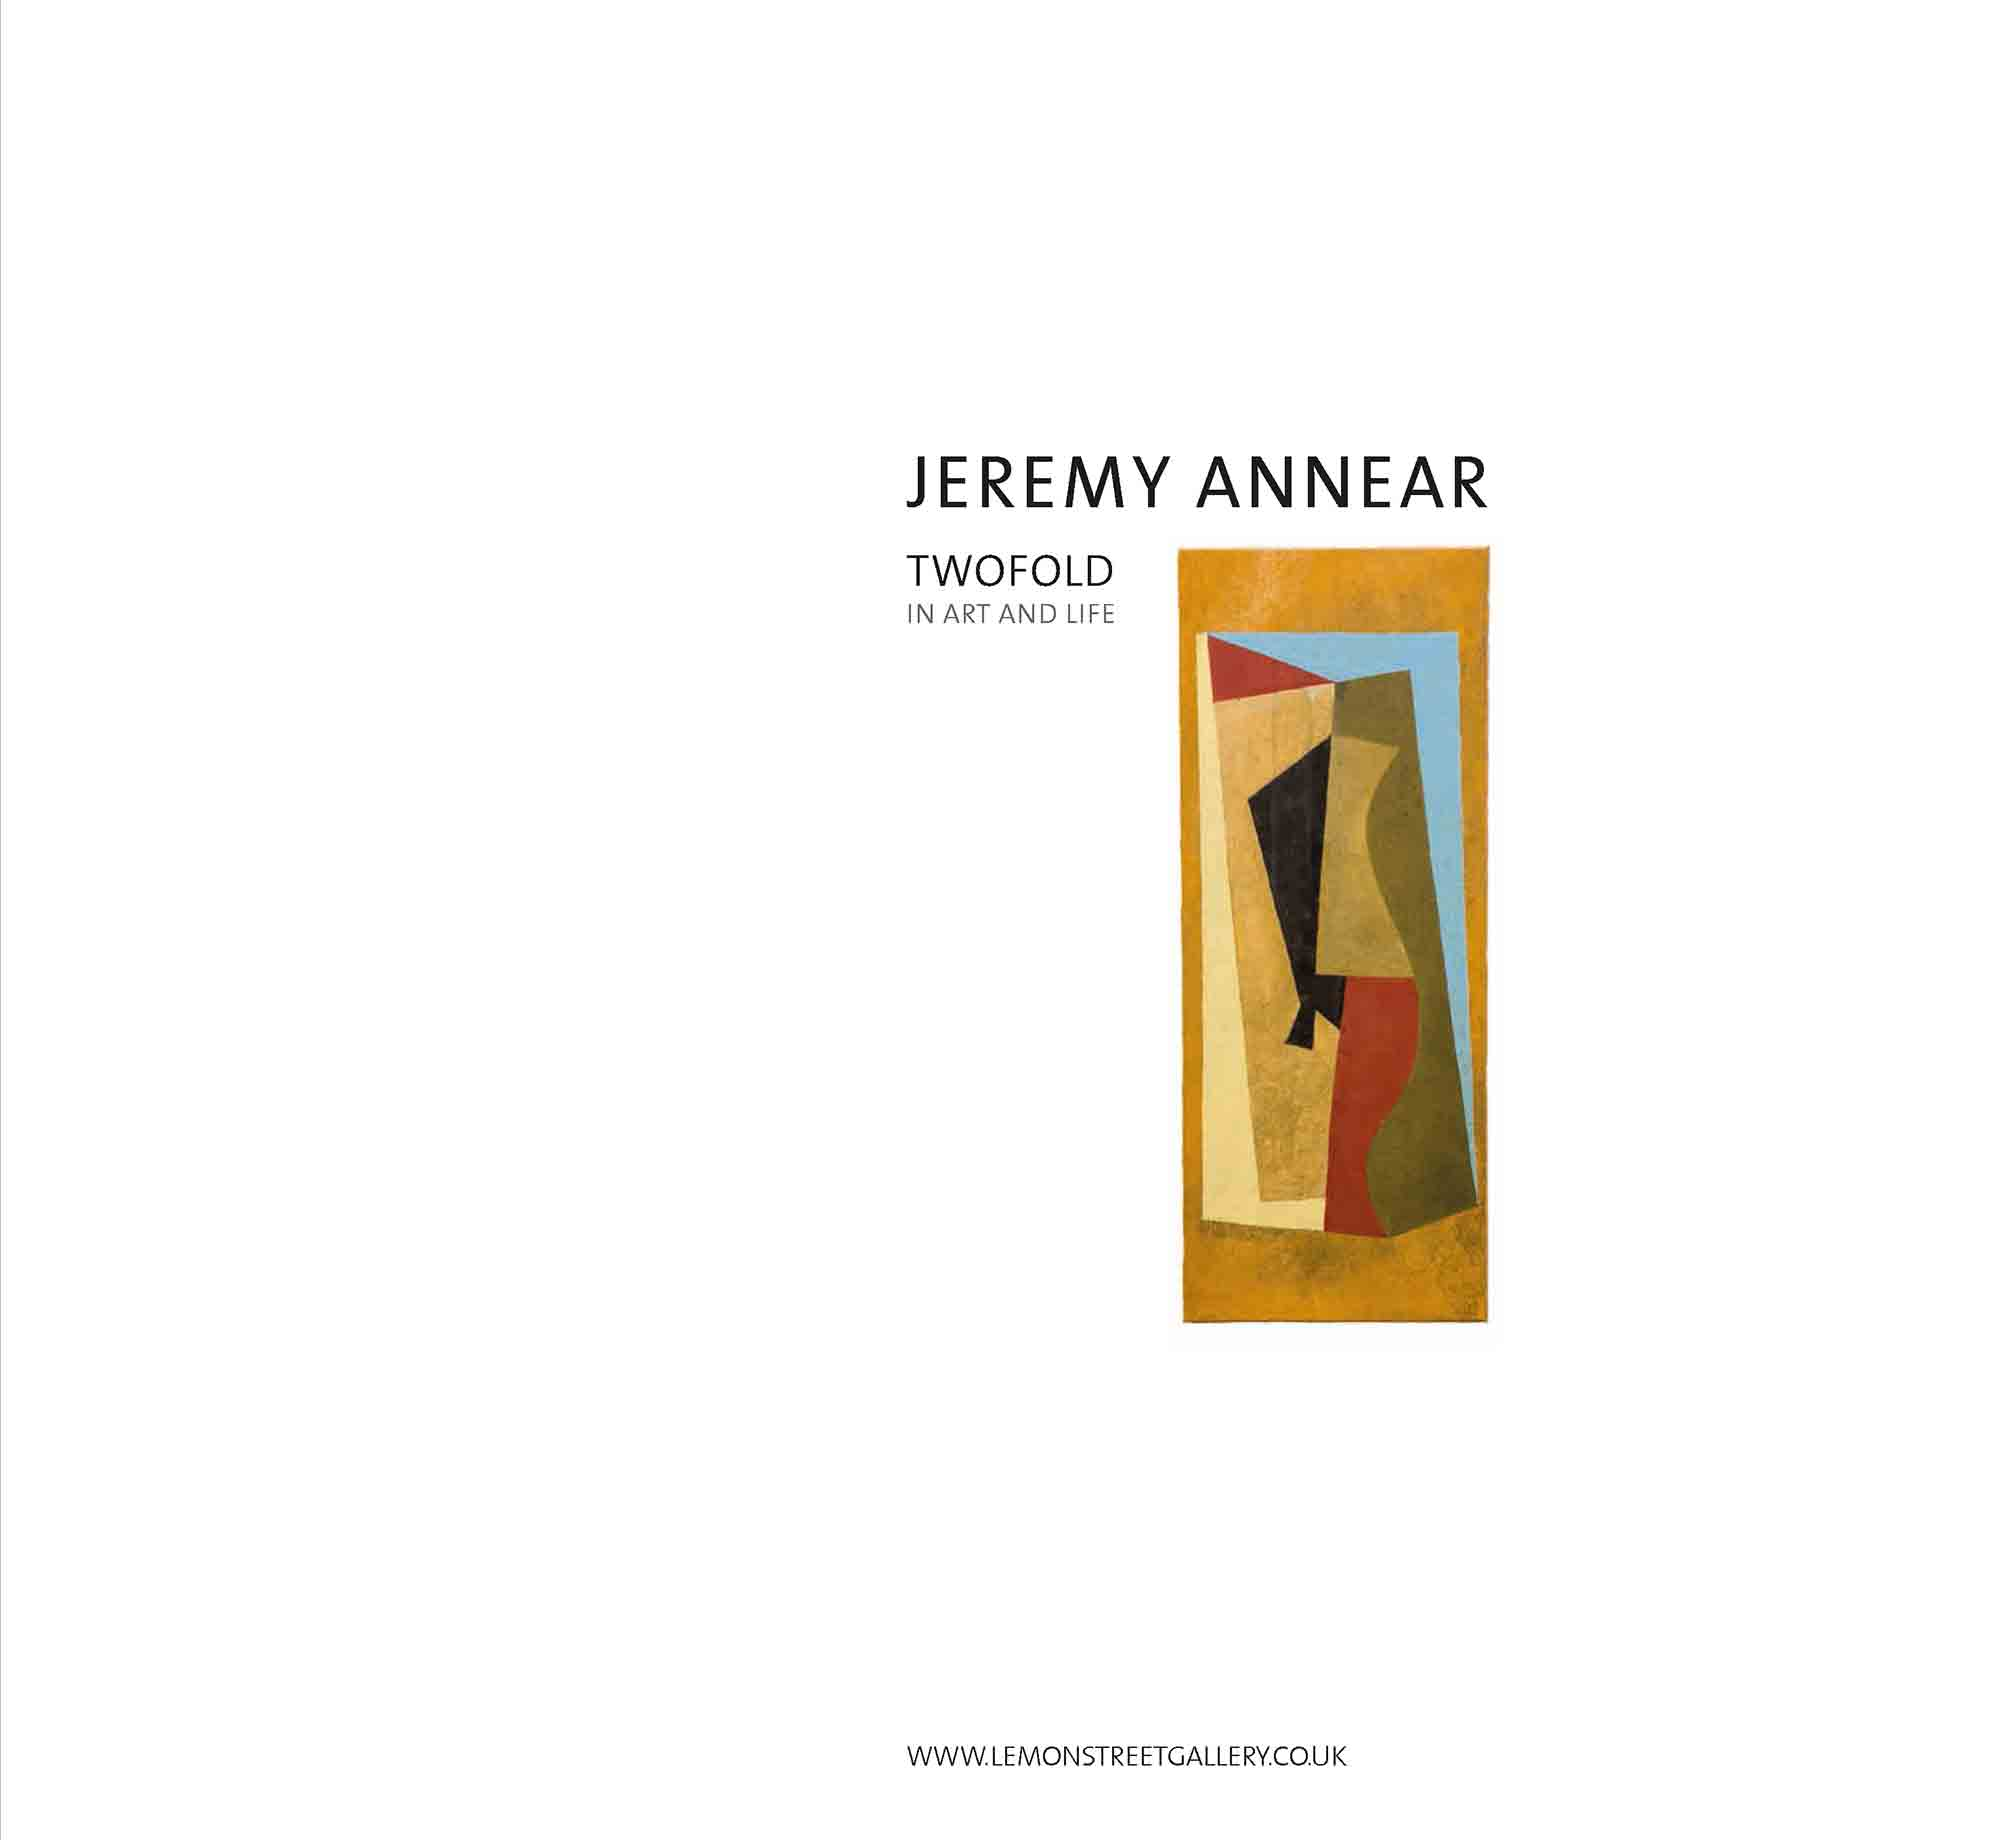 Jeremy Annear publication image